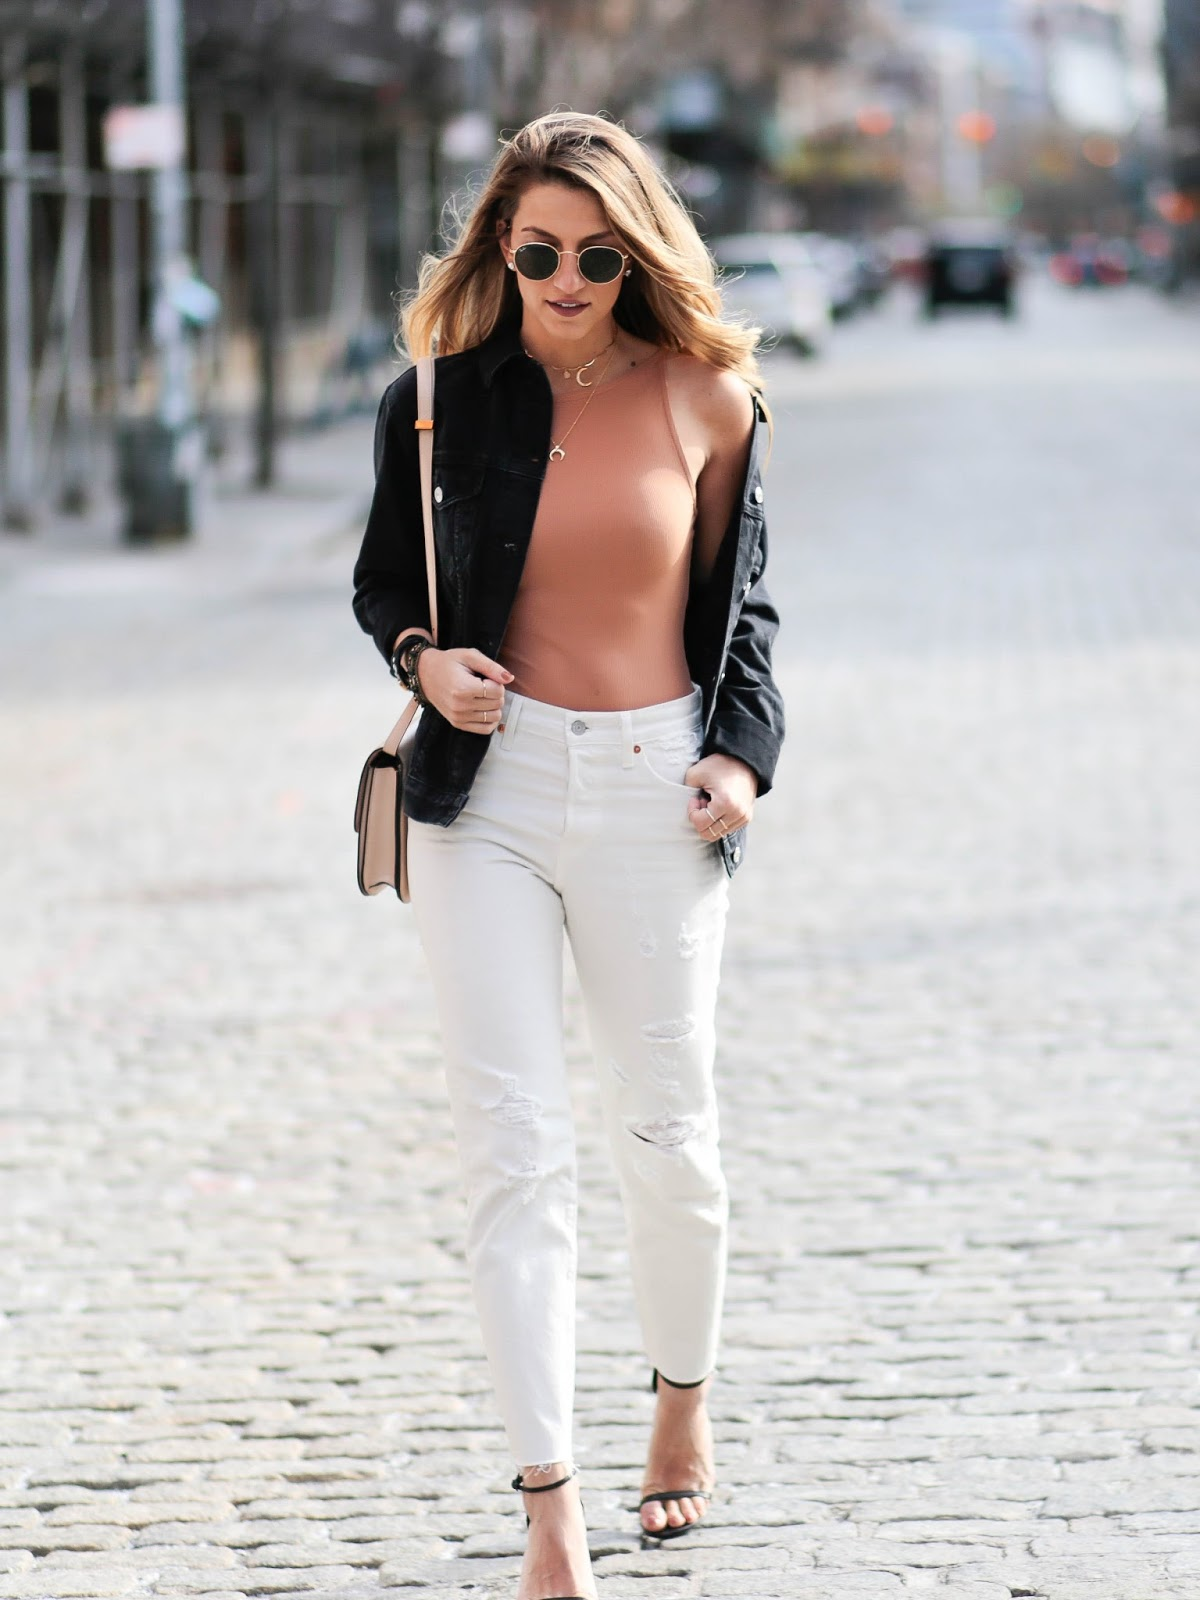 bodysuit and boyfriend jeans, dressed for dreams